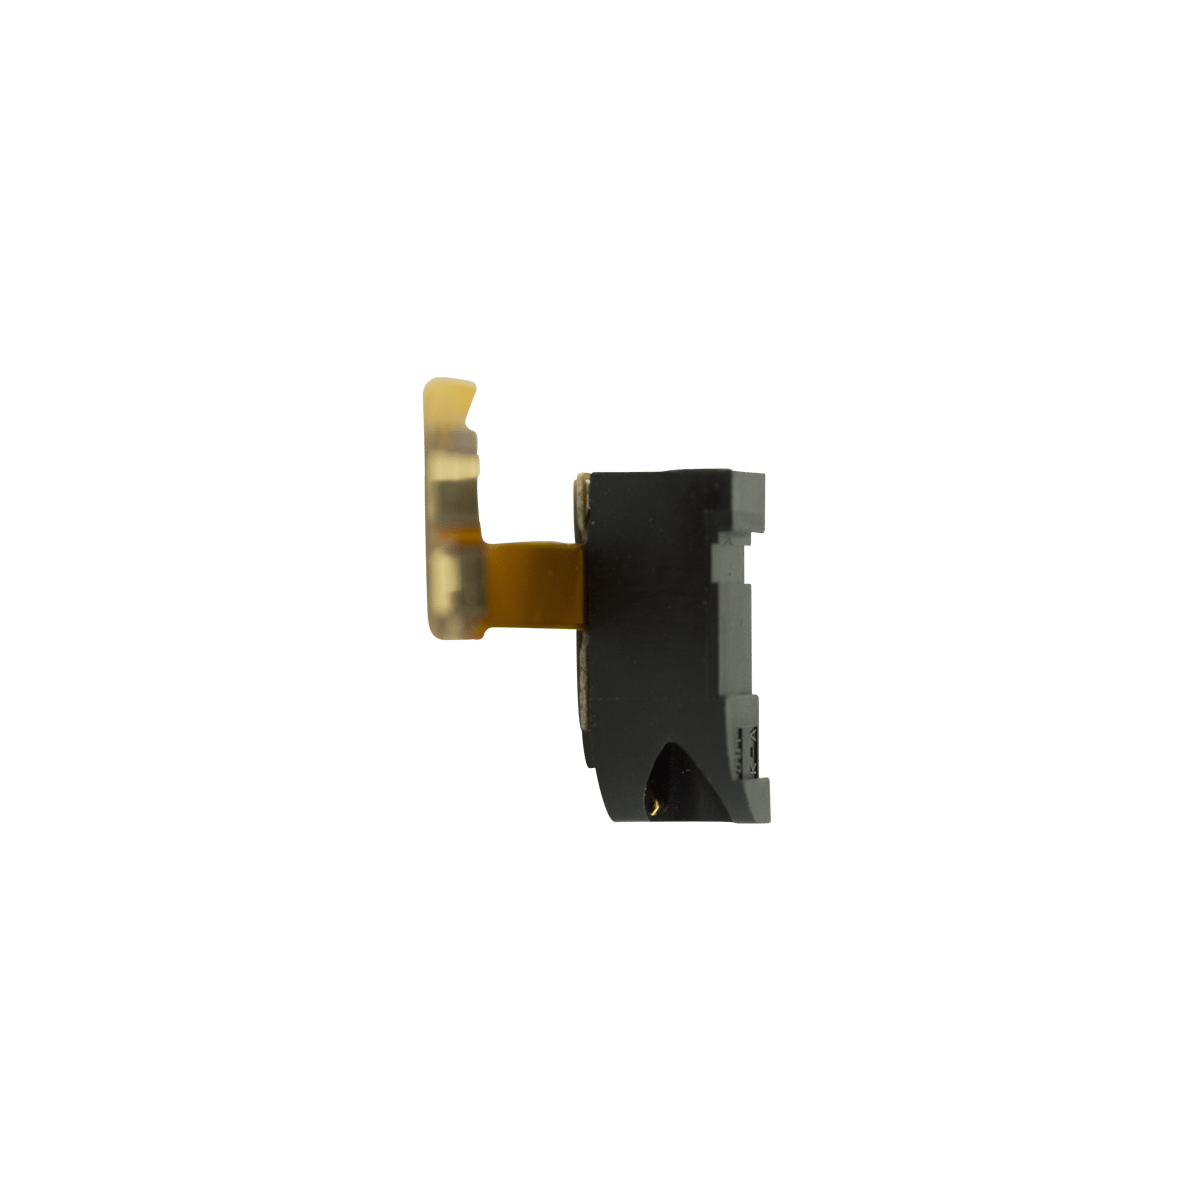 Nokia Lumia 1520 Headphone Jack Replacement